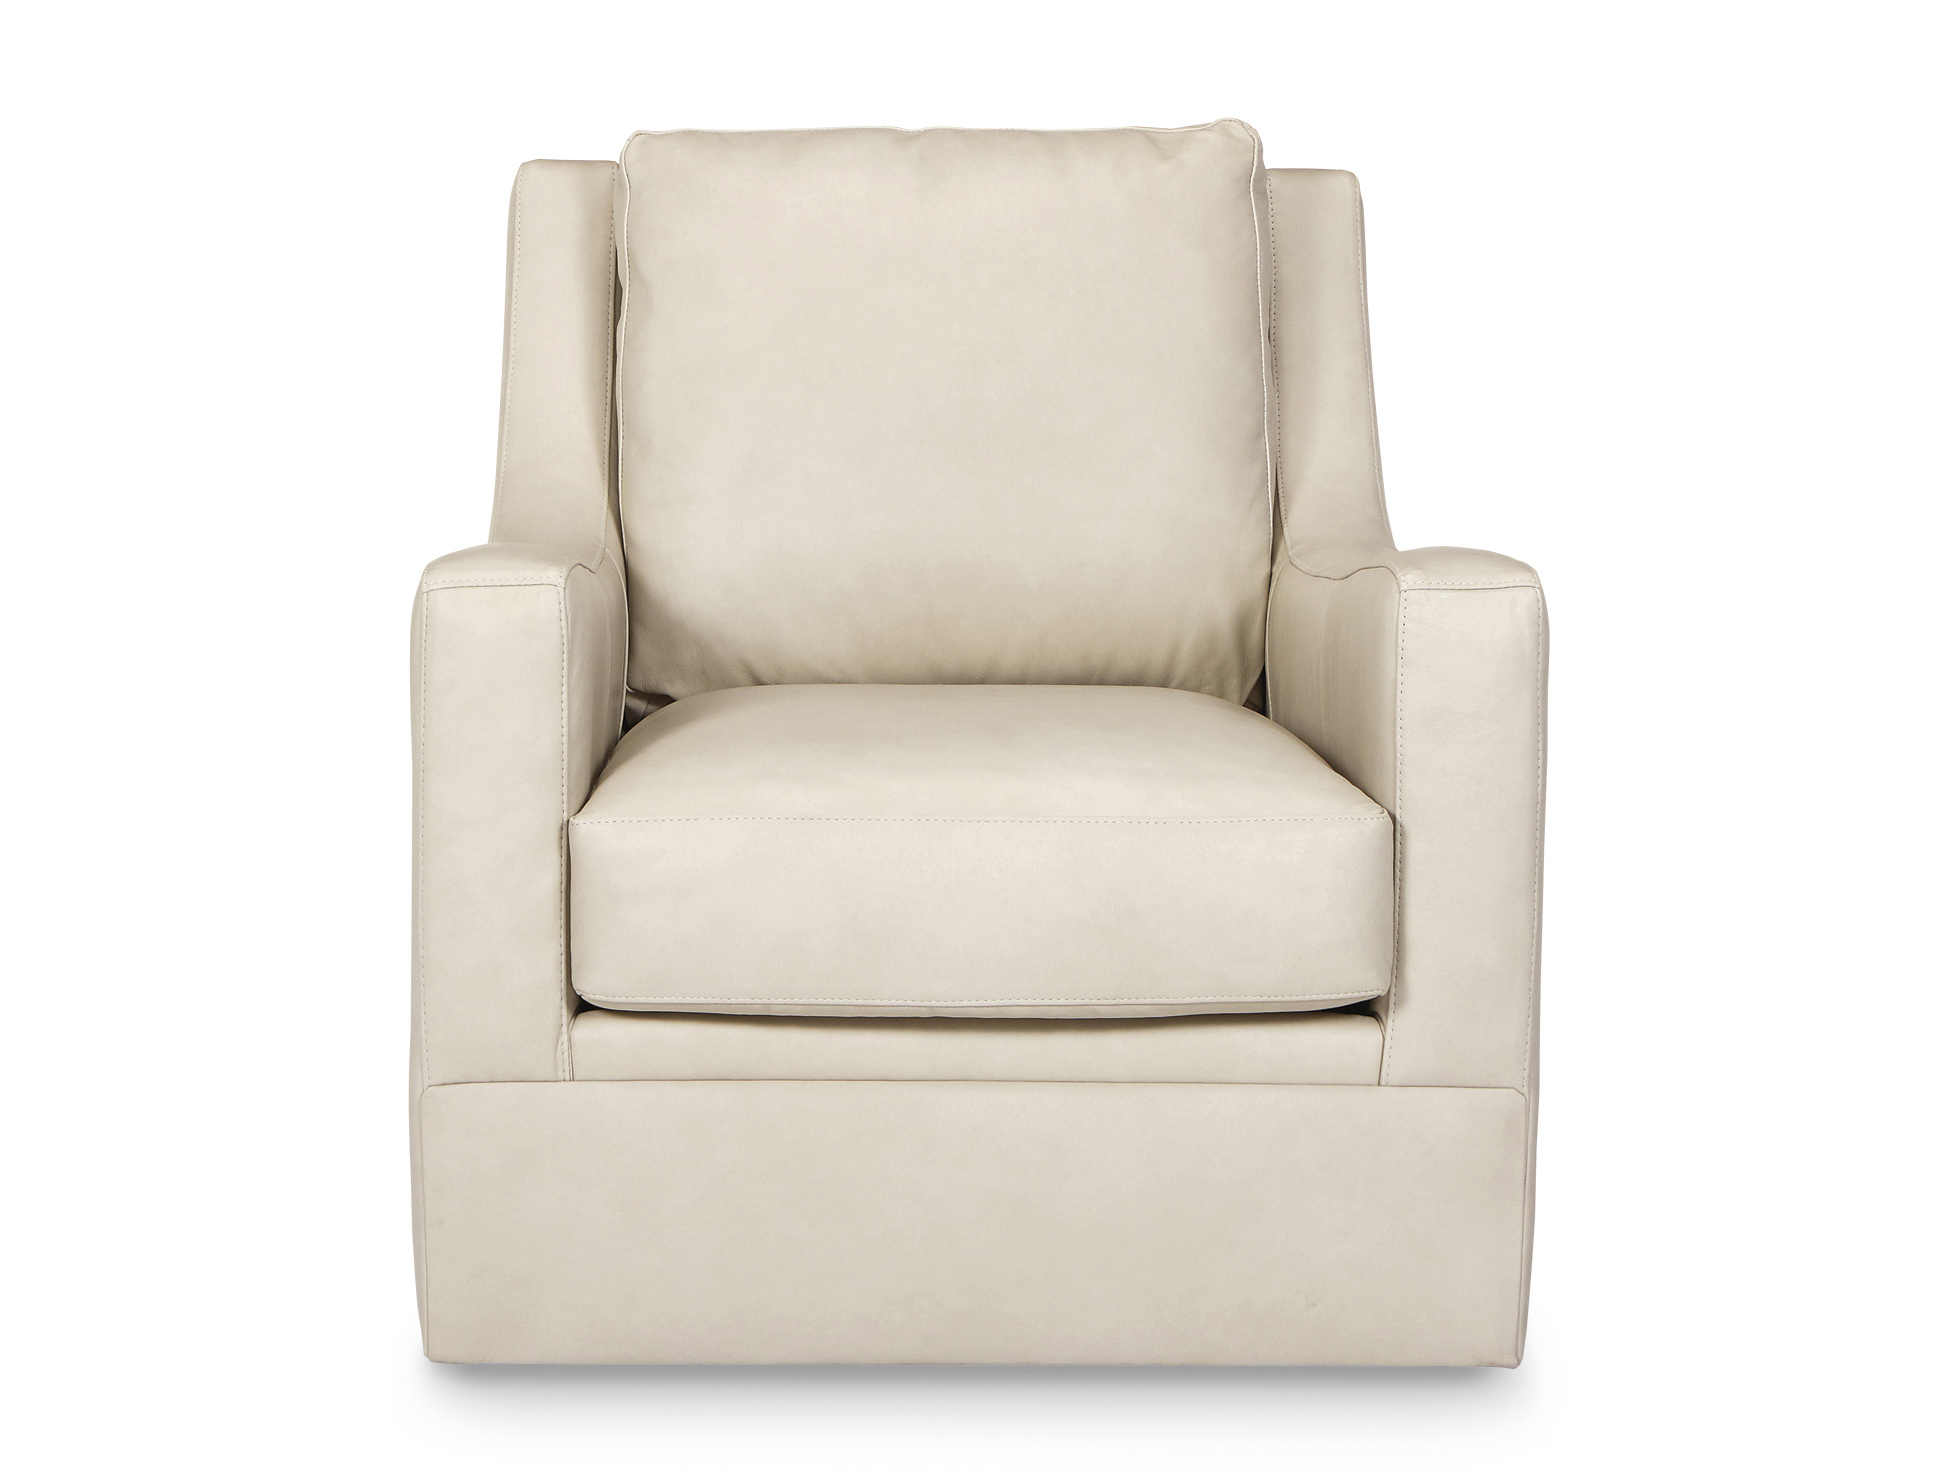 Pleasing Jagger Swivel Tub Chair Living Room Chairs Chaises Camellatalisay Diy Chair Ideas Camellatalisaycom